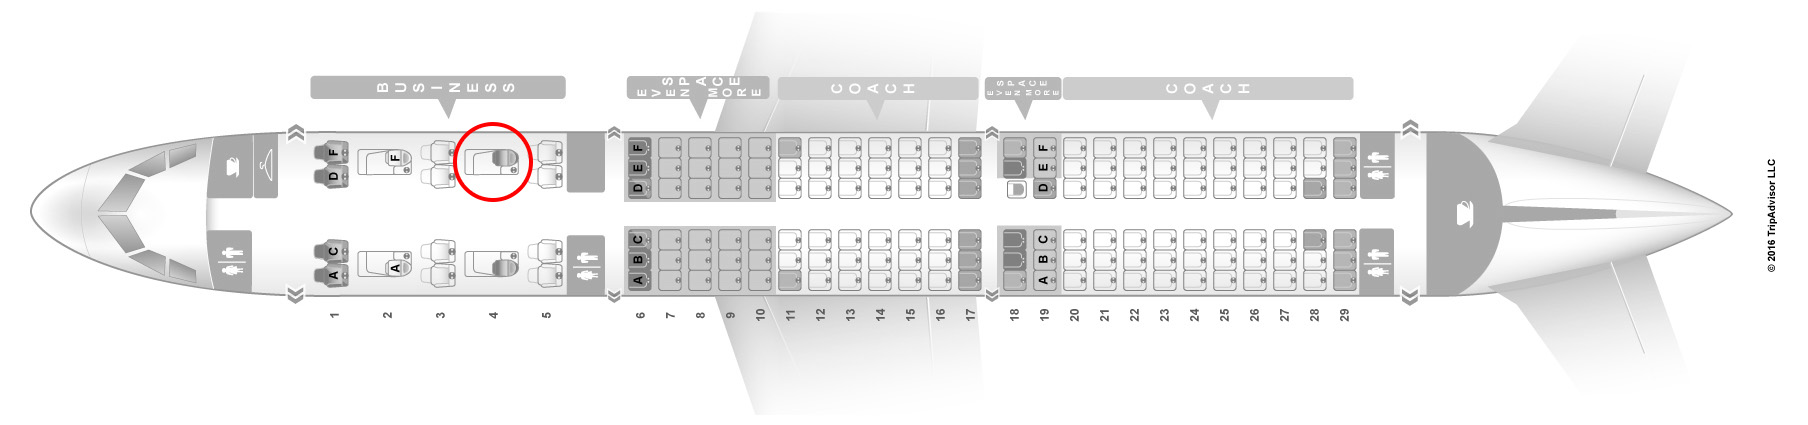 JetBlue a321 transcon seat map